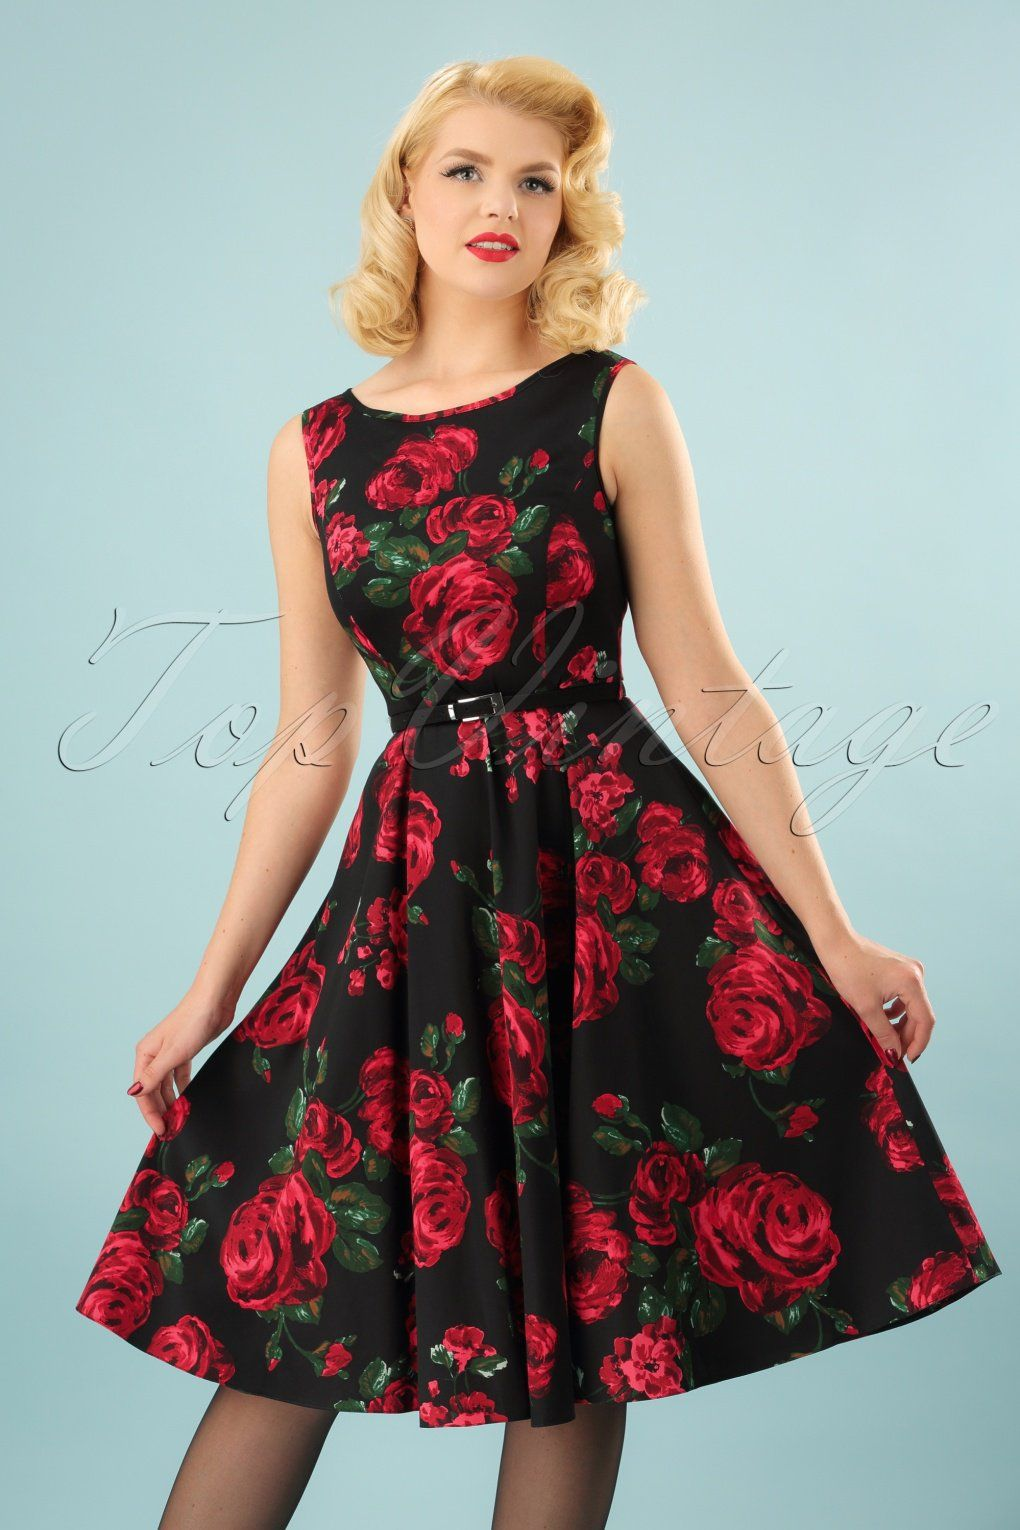 This 50s Hepburn Red Rose Dress In Black Makes Sure You Ll Be The Centre Of Attention The Hepburn Dress Has Been One Red Rose Dress Rose Dress Stunning Dresses [ 1530 x 1020 Pixel ]